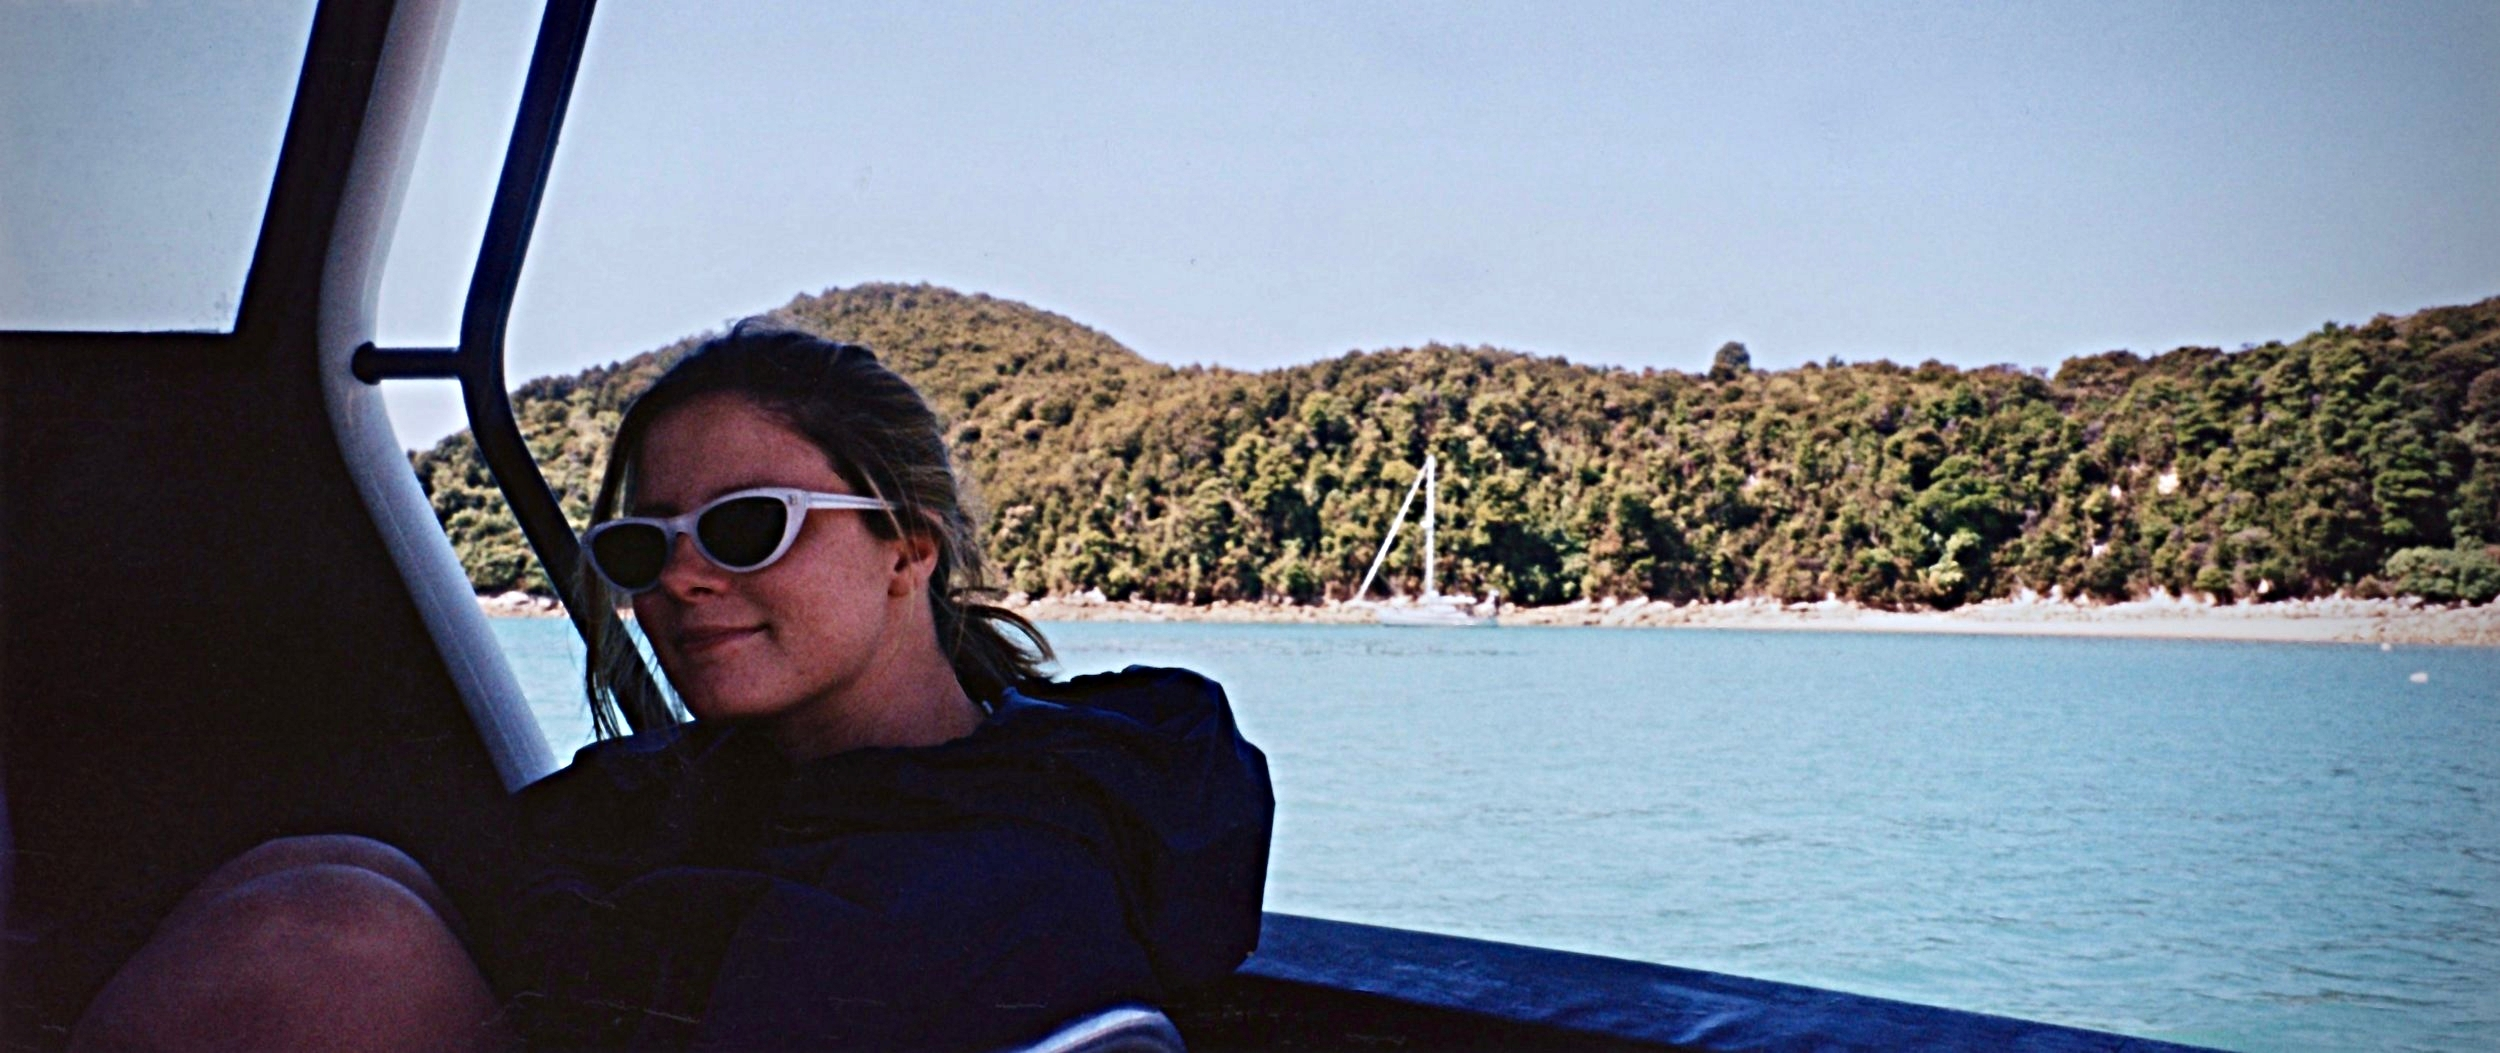 Lula on Brent's boat, Abel Tasmin National Park, New Zealand